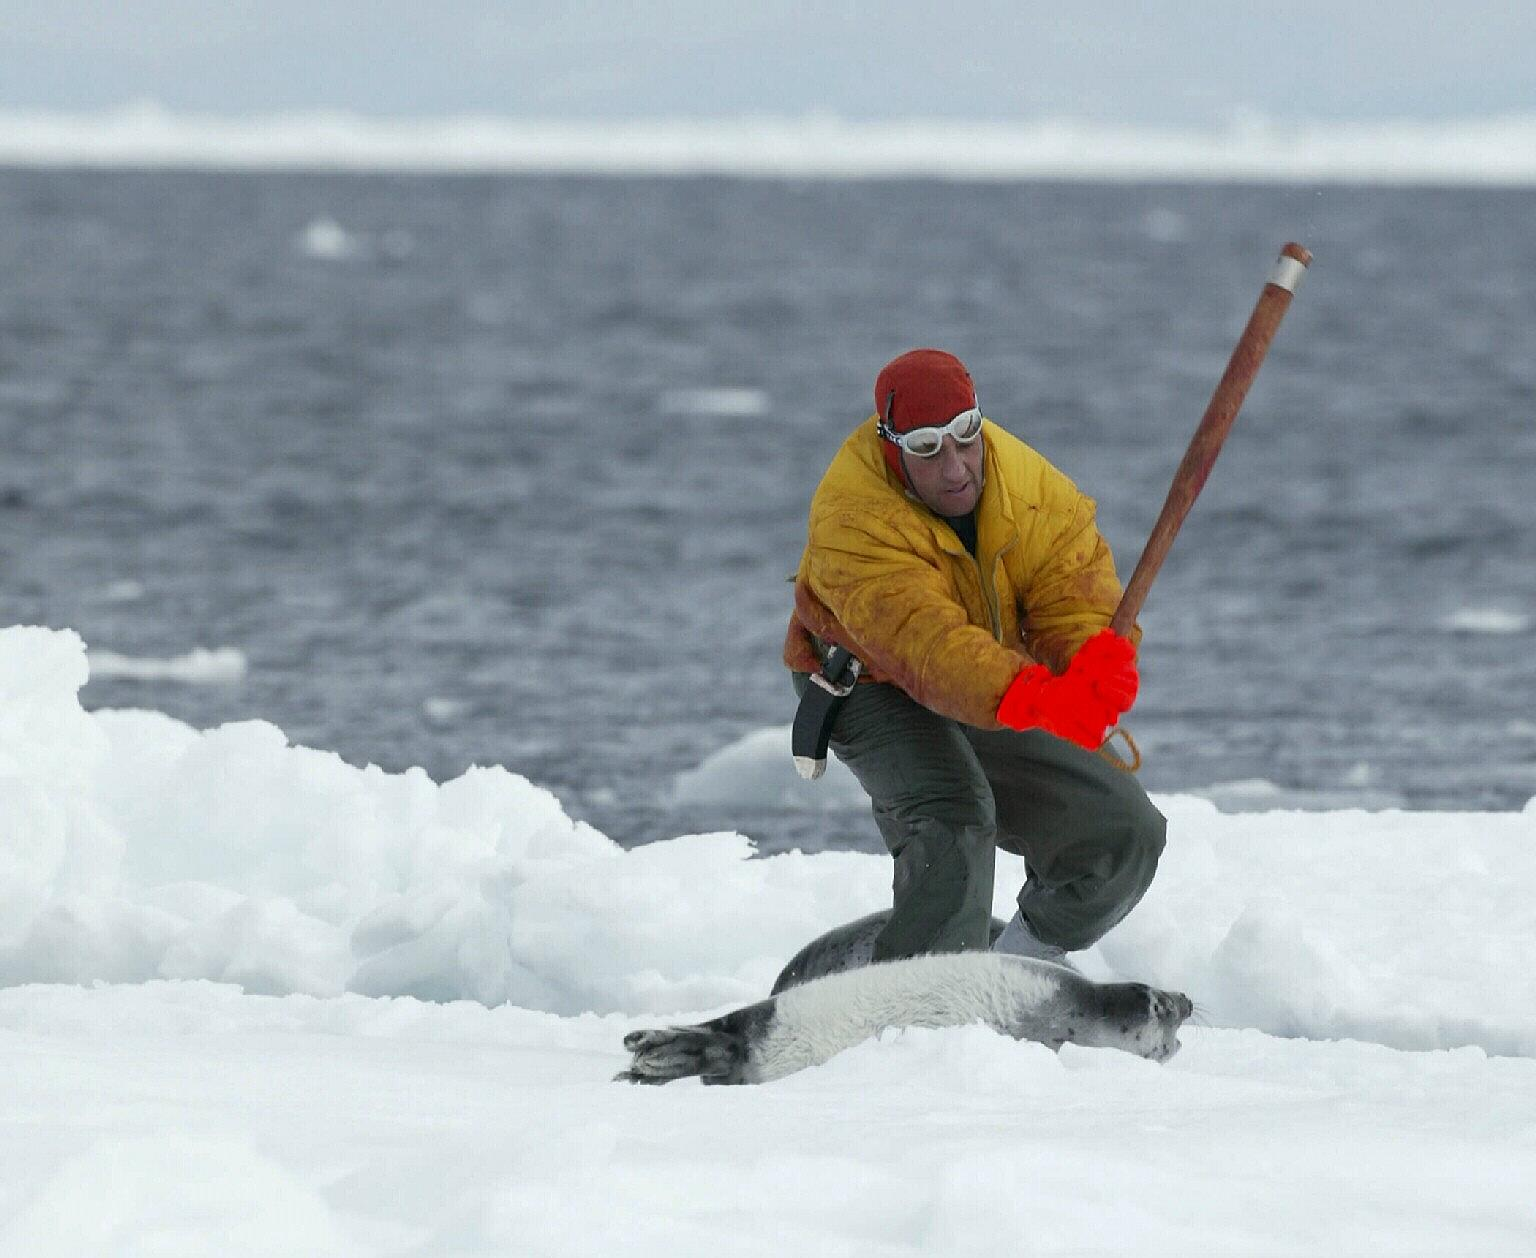 As Of April 27 Sealers Have Killed Roximately 58 764 Harp Seal Pups On The Ice Floes Off Canada S East Coast Ocean Sentry